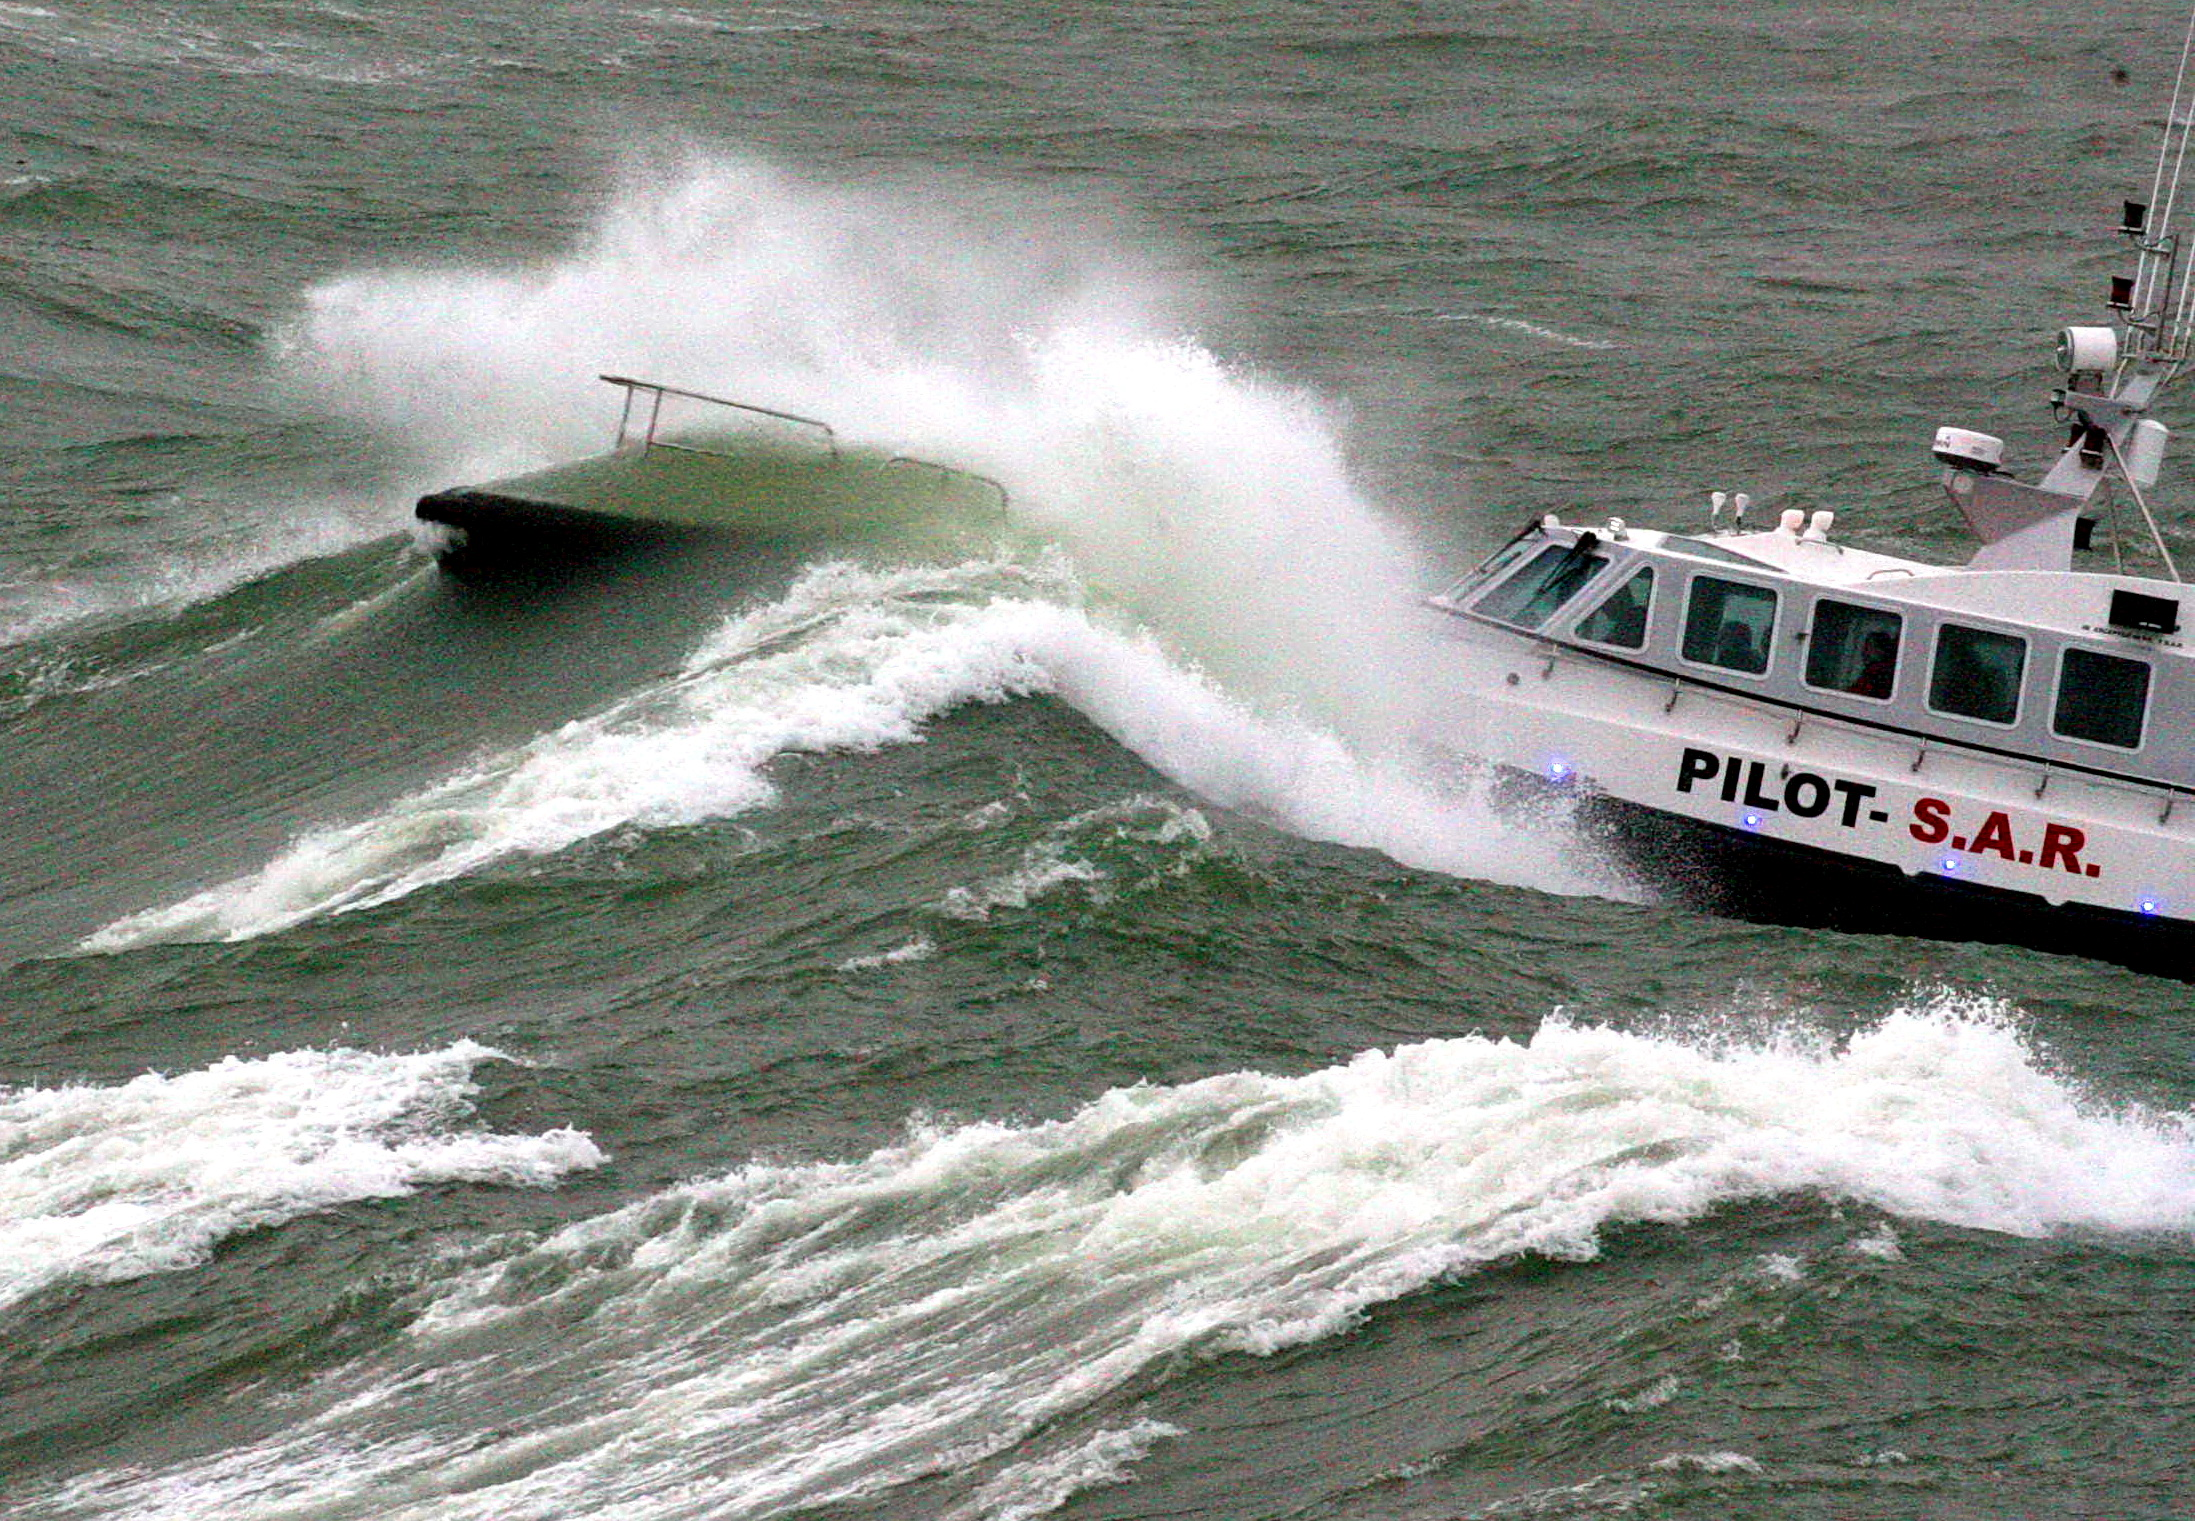 Pilot boat through wave 2